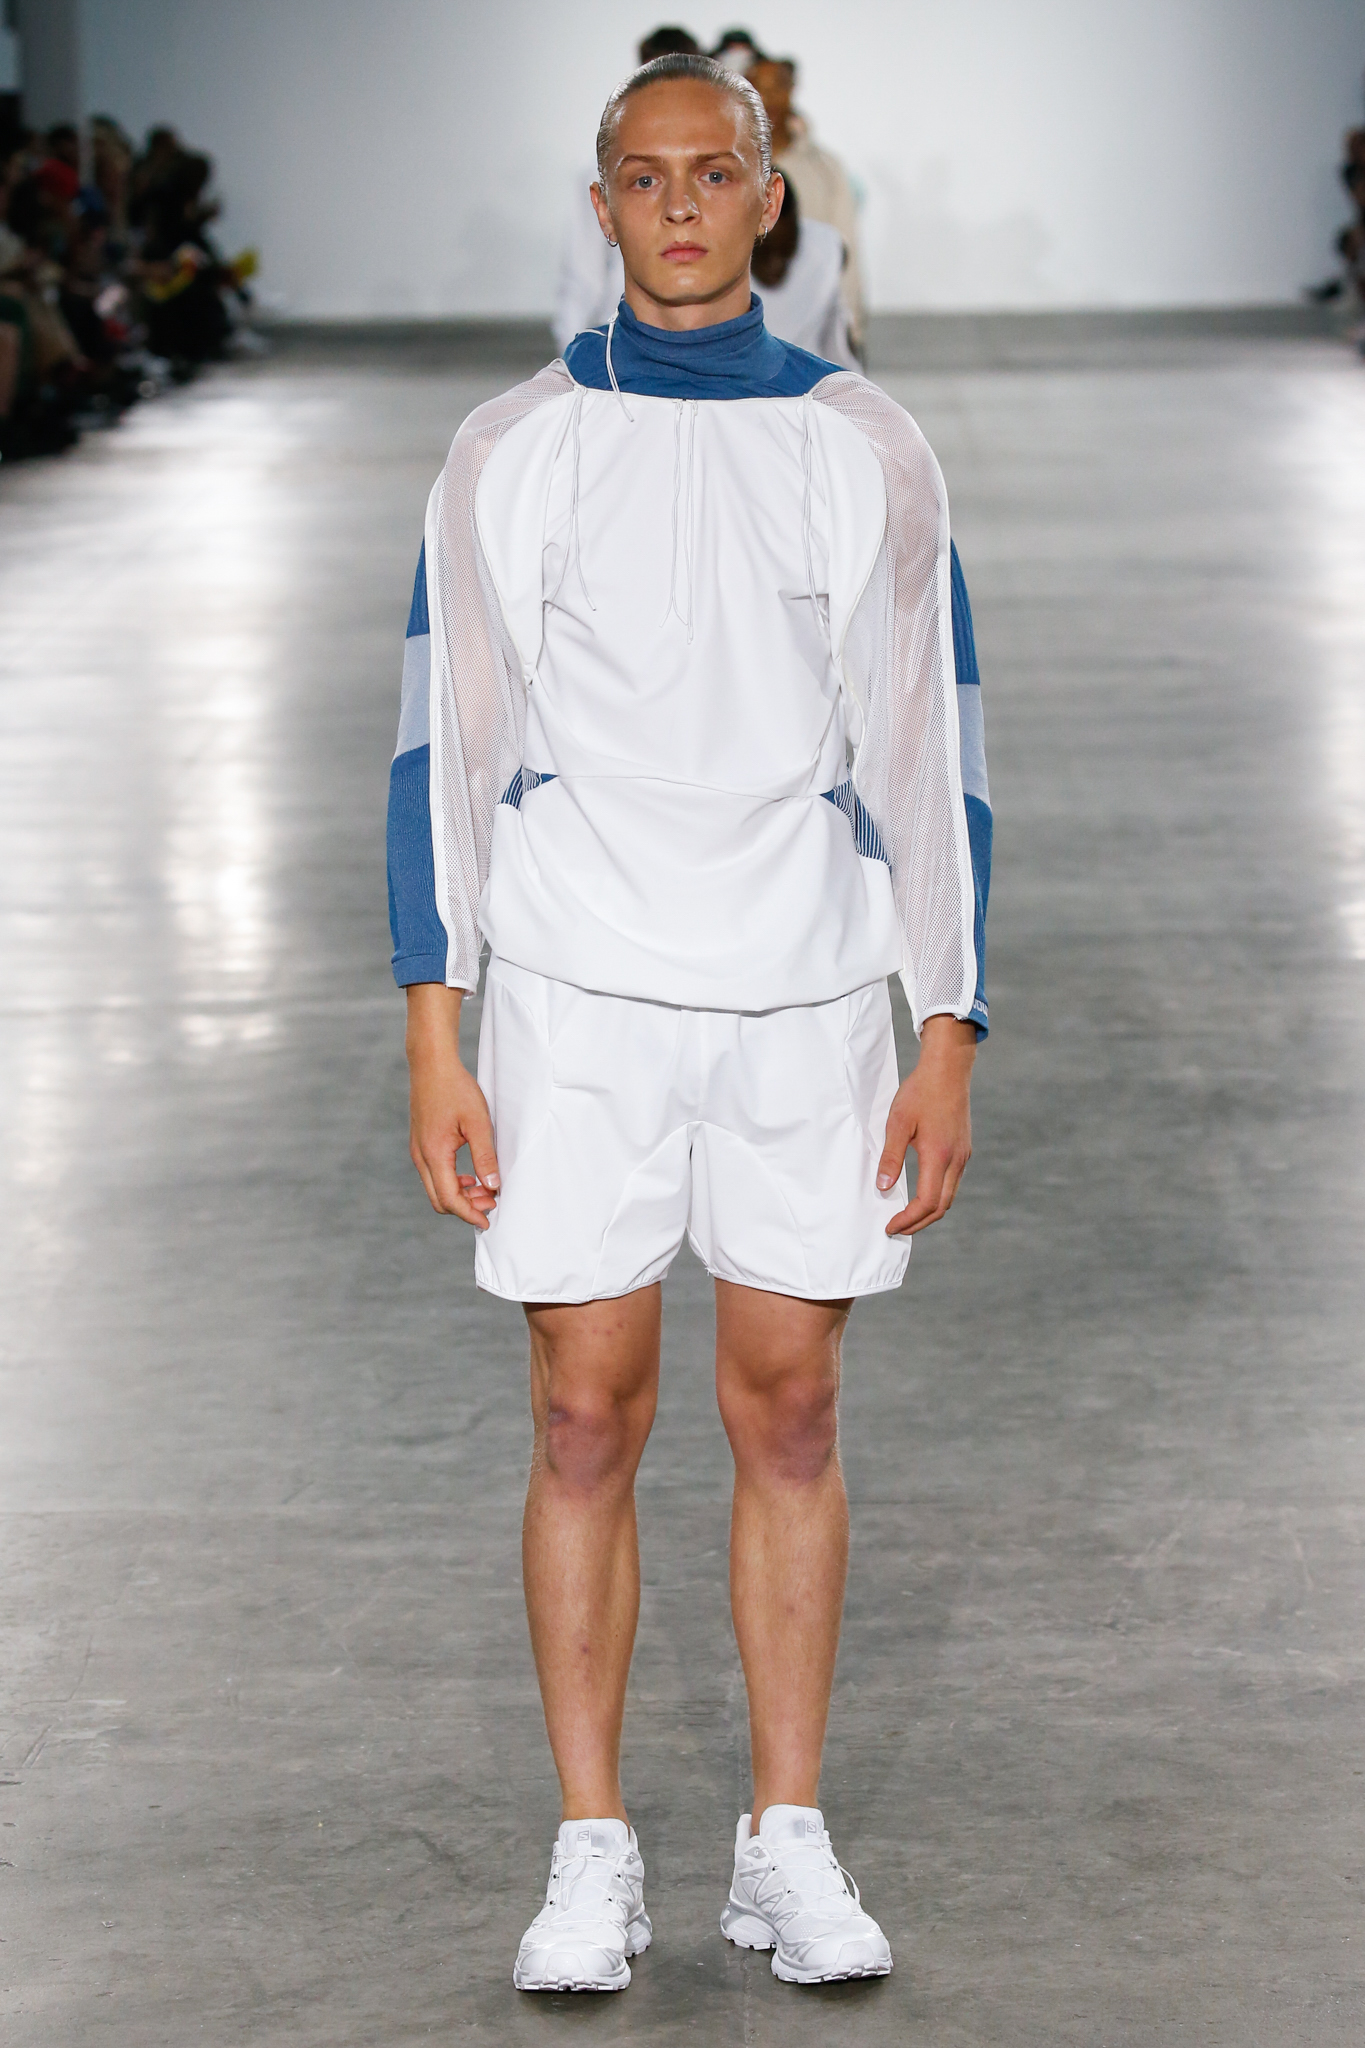 FASHION EAST, Saul Nash,  Men's Spring 2020 photographed in London on 09 June 2019